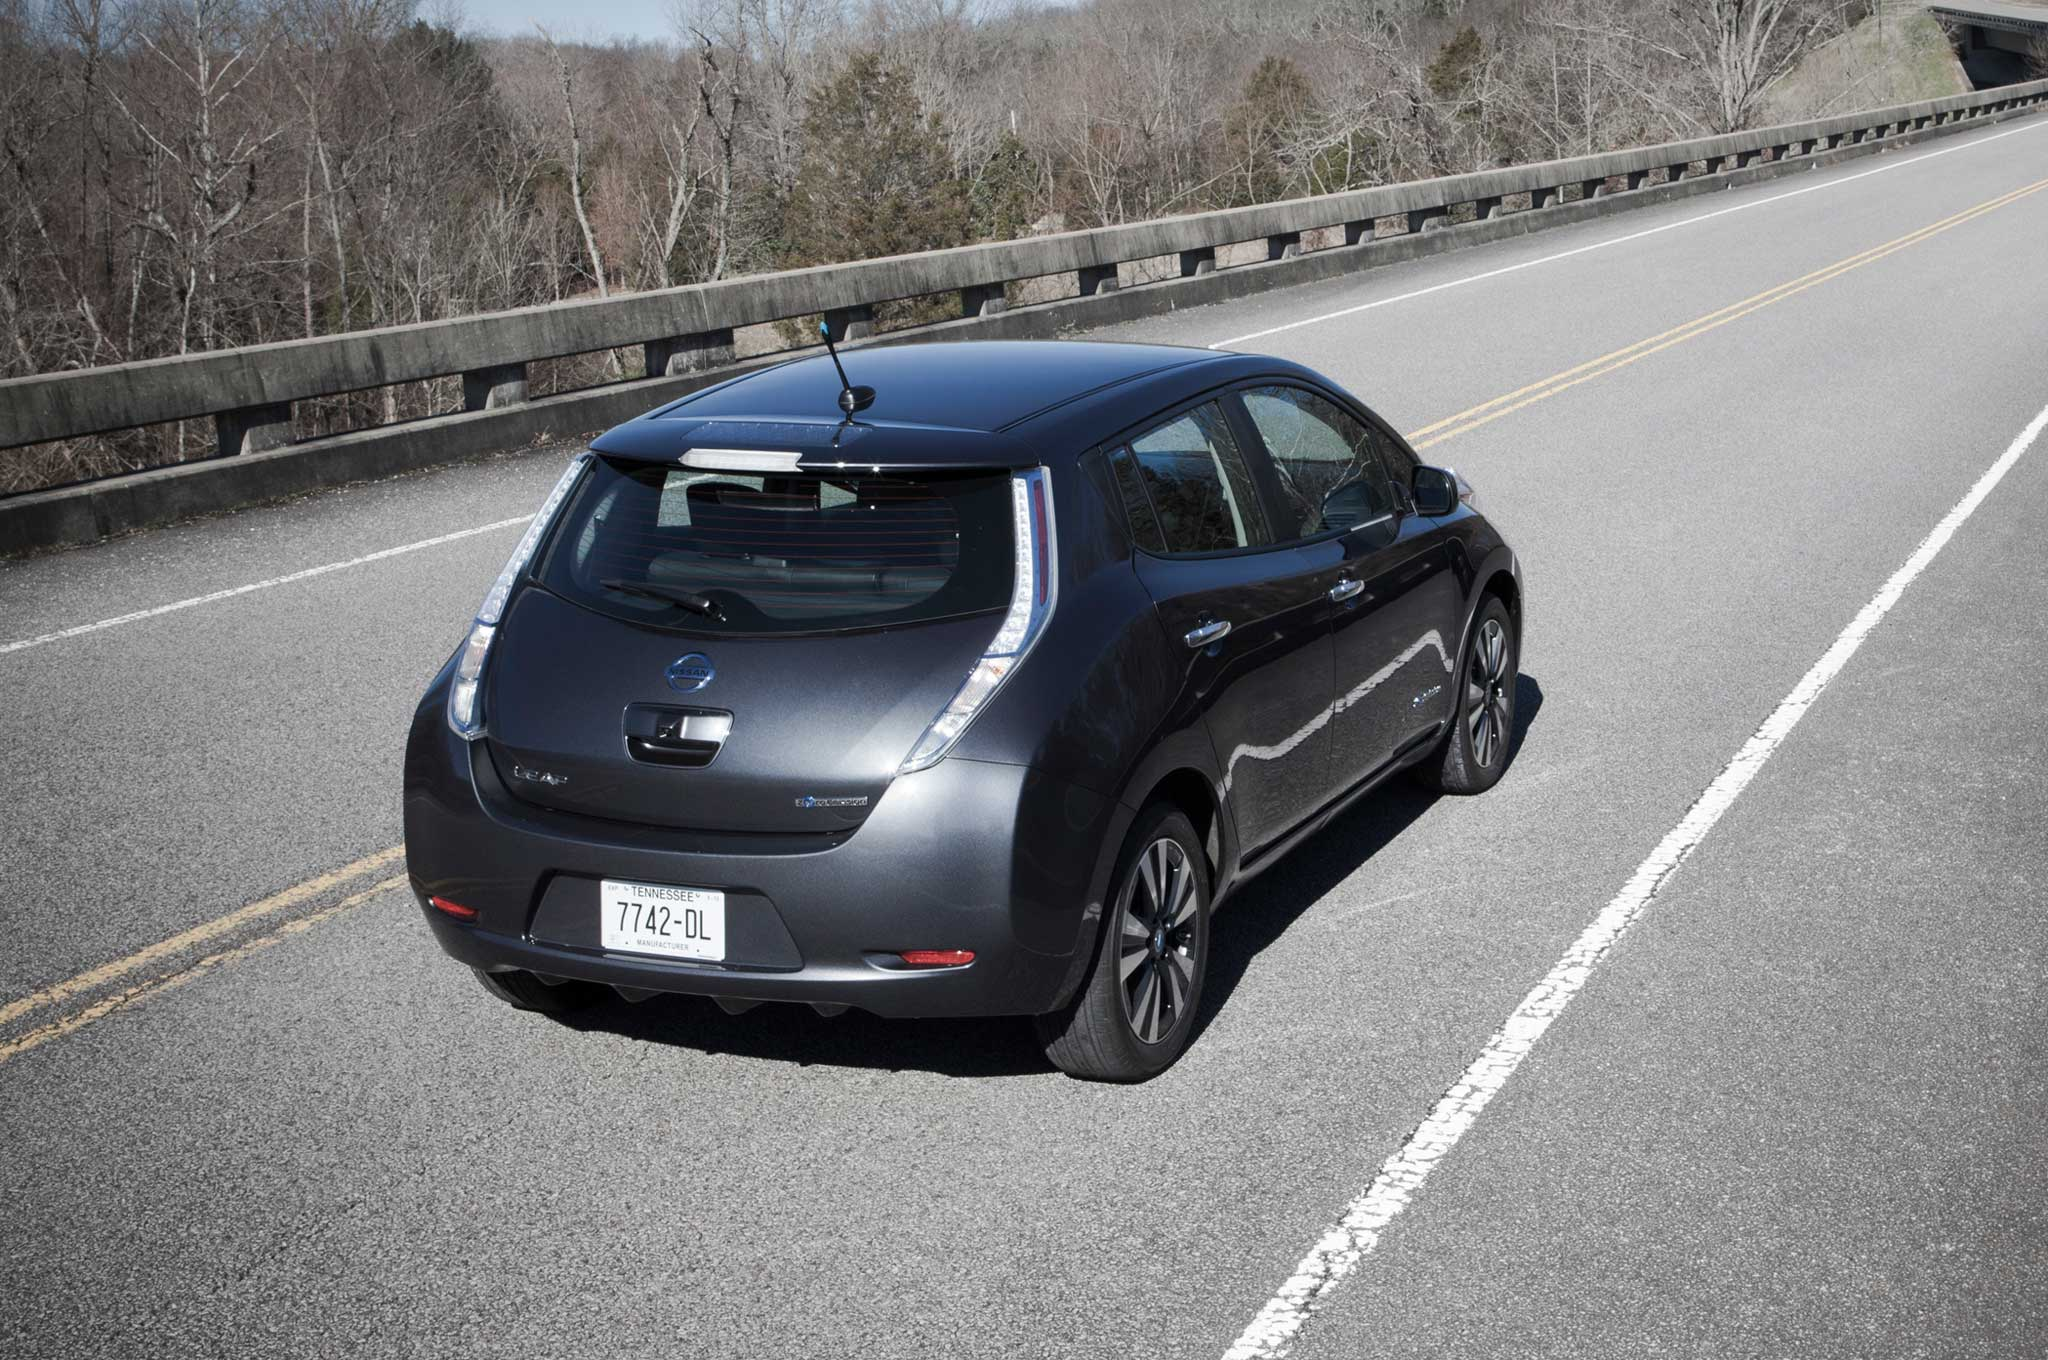 Charming Nissan To Offer $100/Month Battery Replacement Program For Leaf